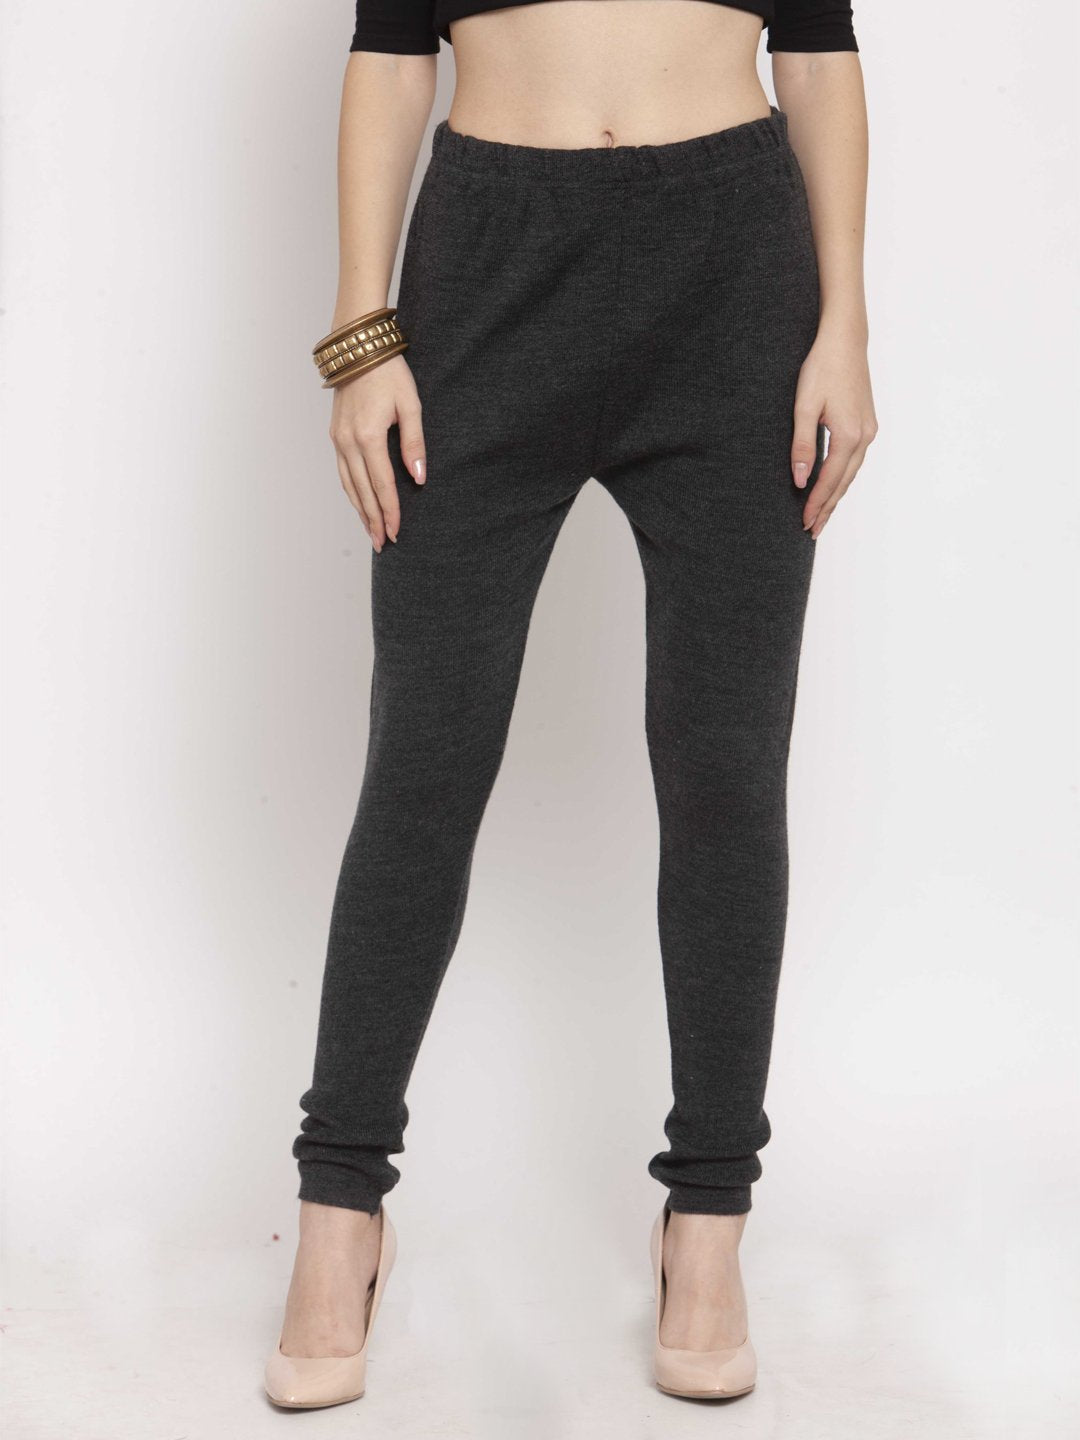 Castle Dark Melange Solid Woolen Legging